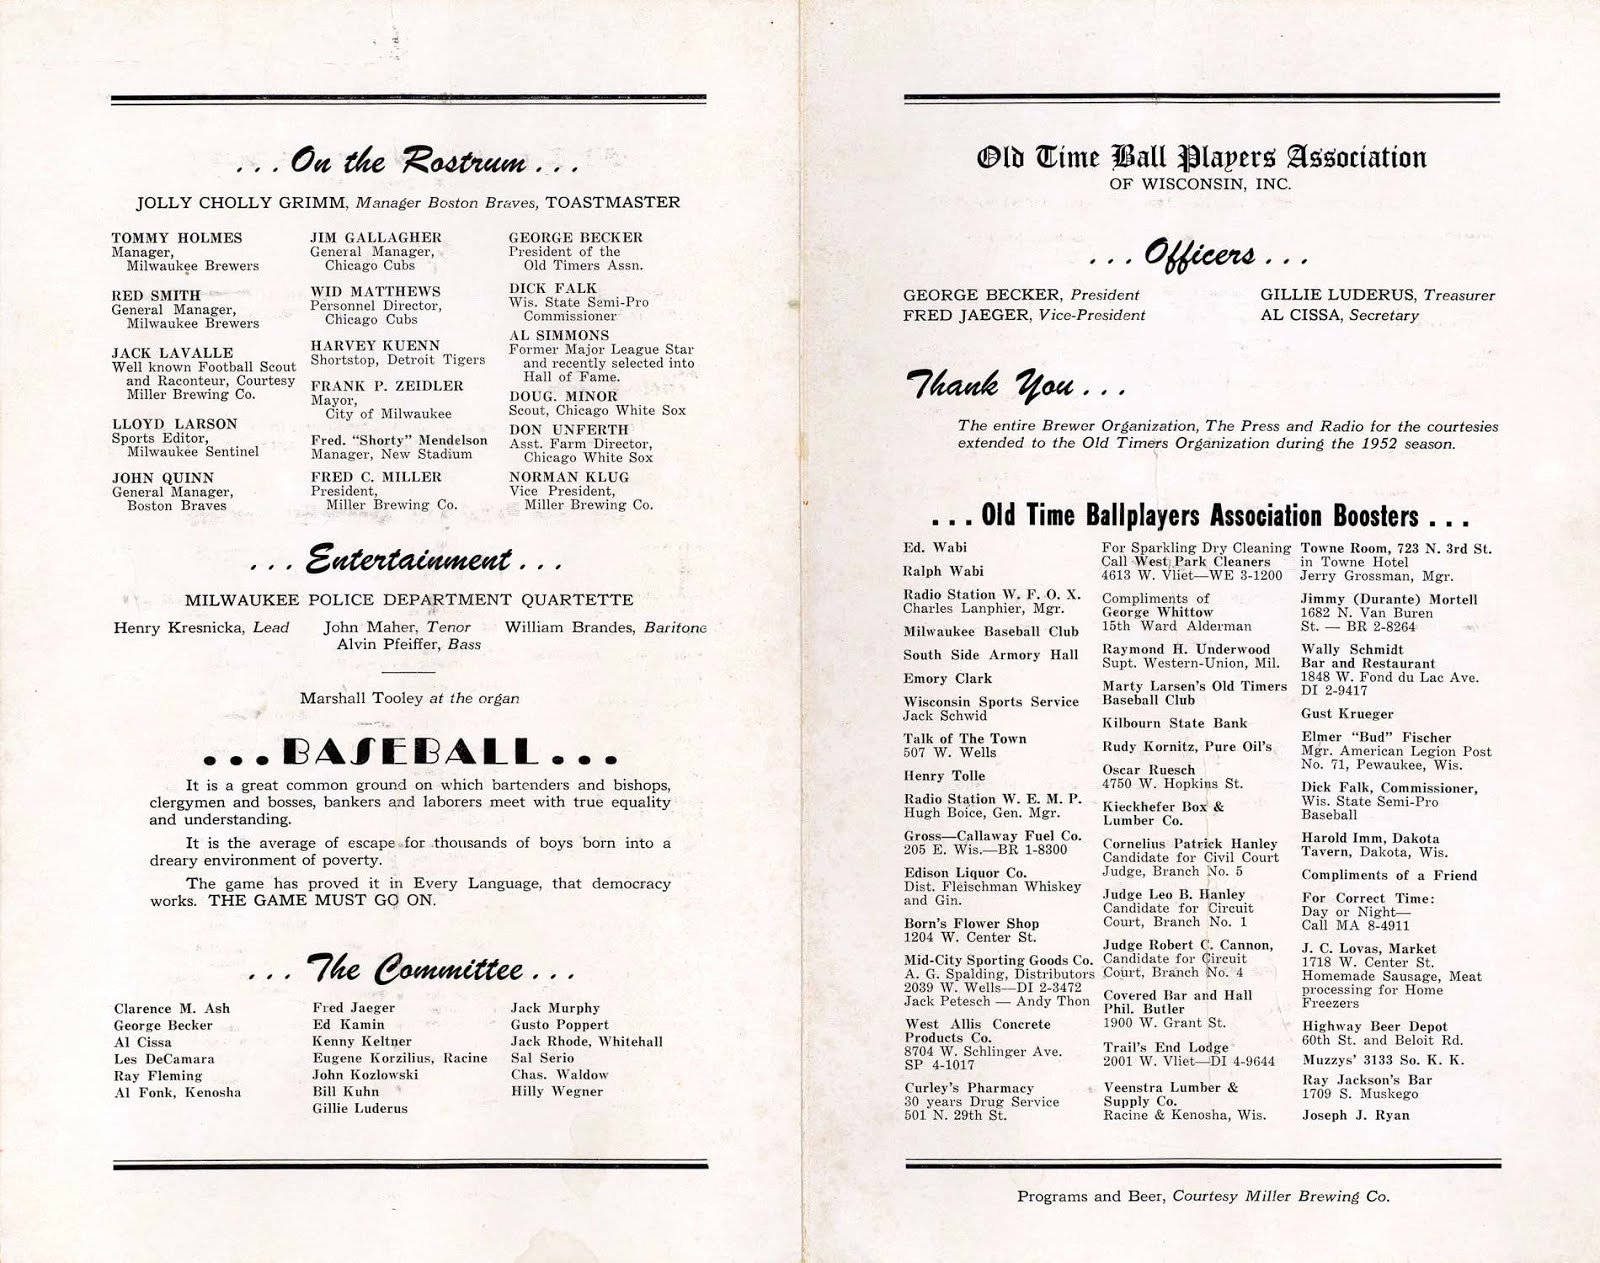 Awards Day Program Template Elegant Borchert Field 1953 Old Time Ballplayers Banquet Program